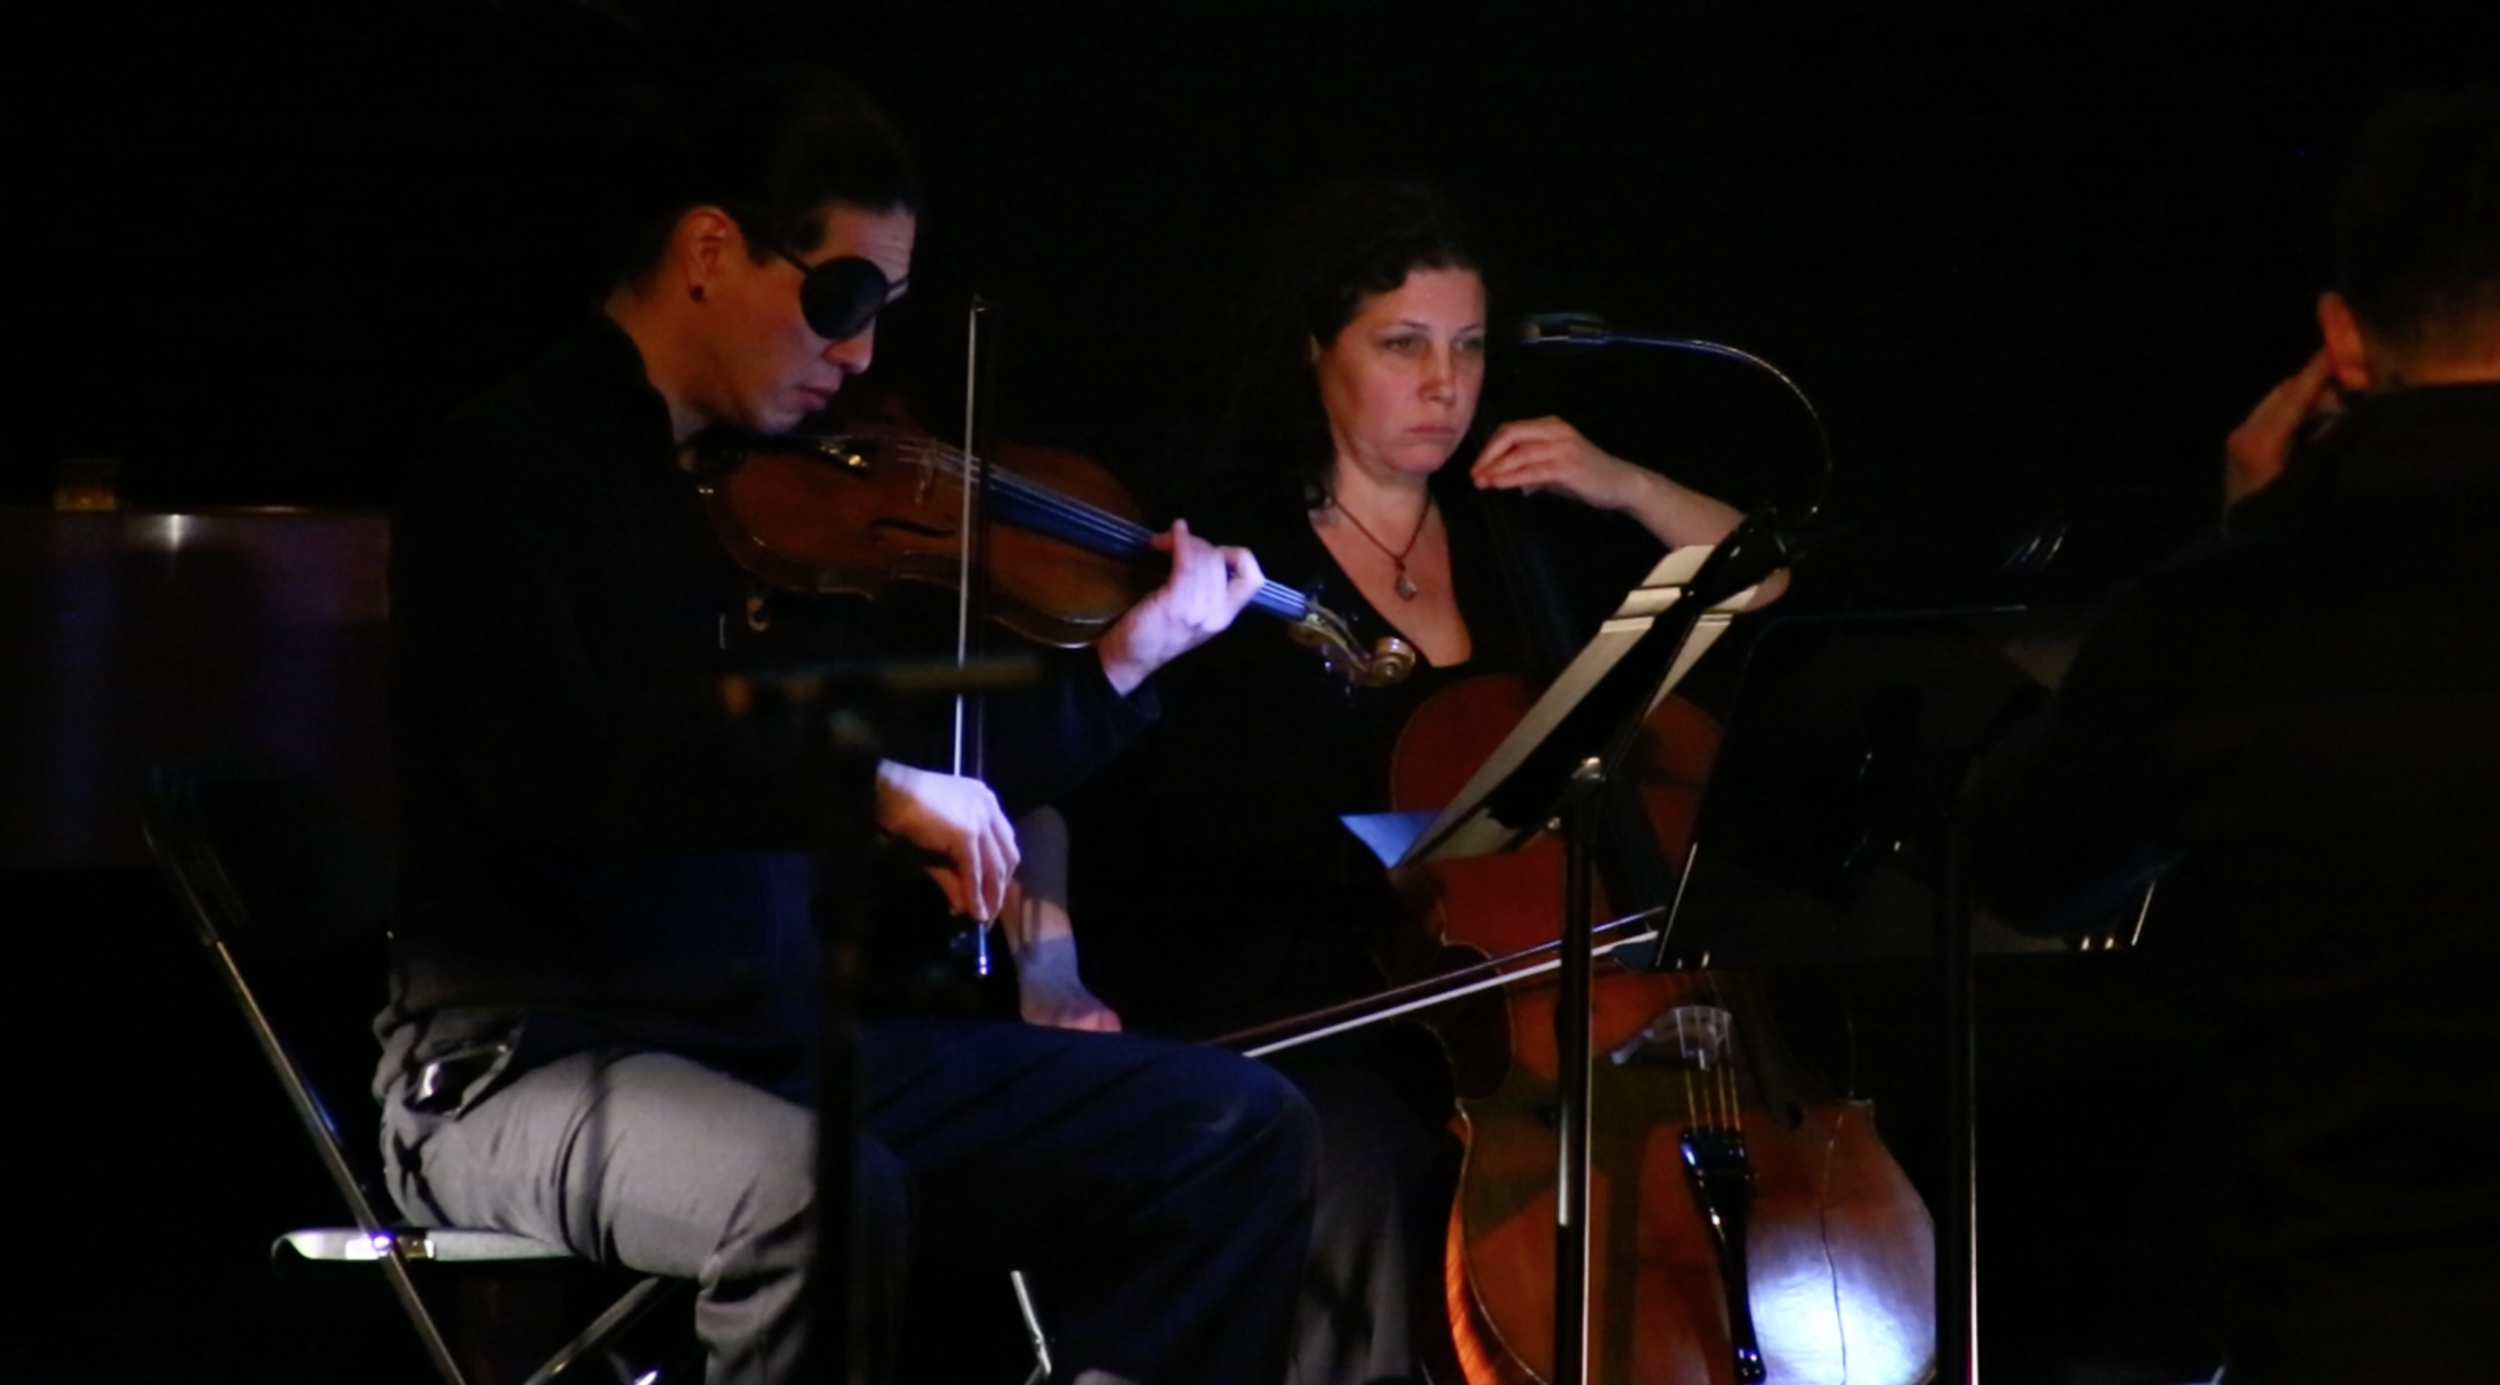 Violinist & Cellist during performance.